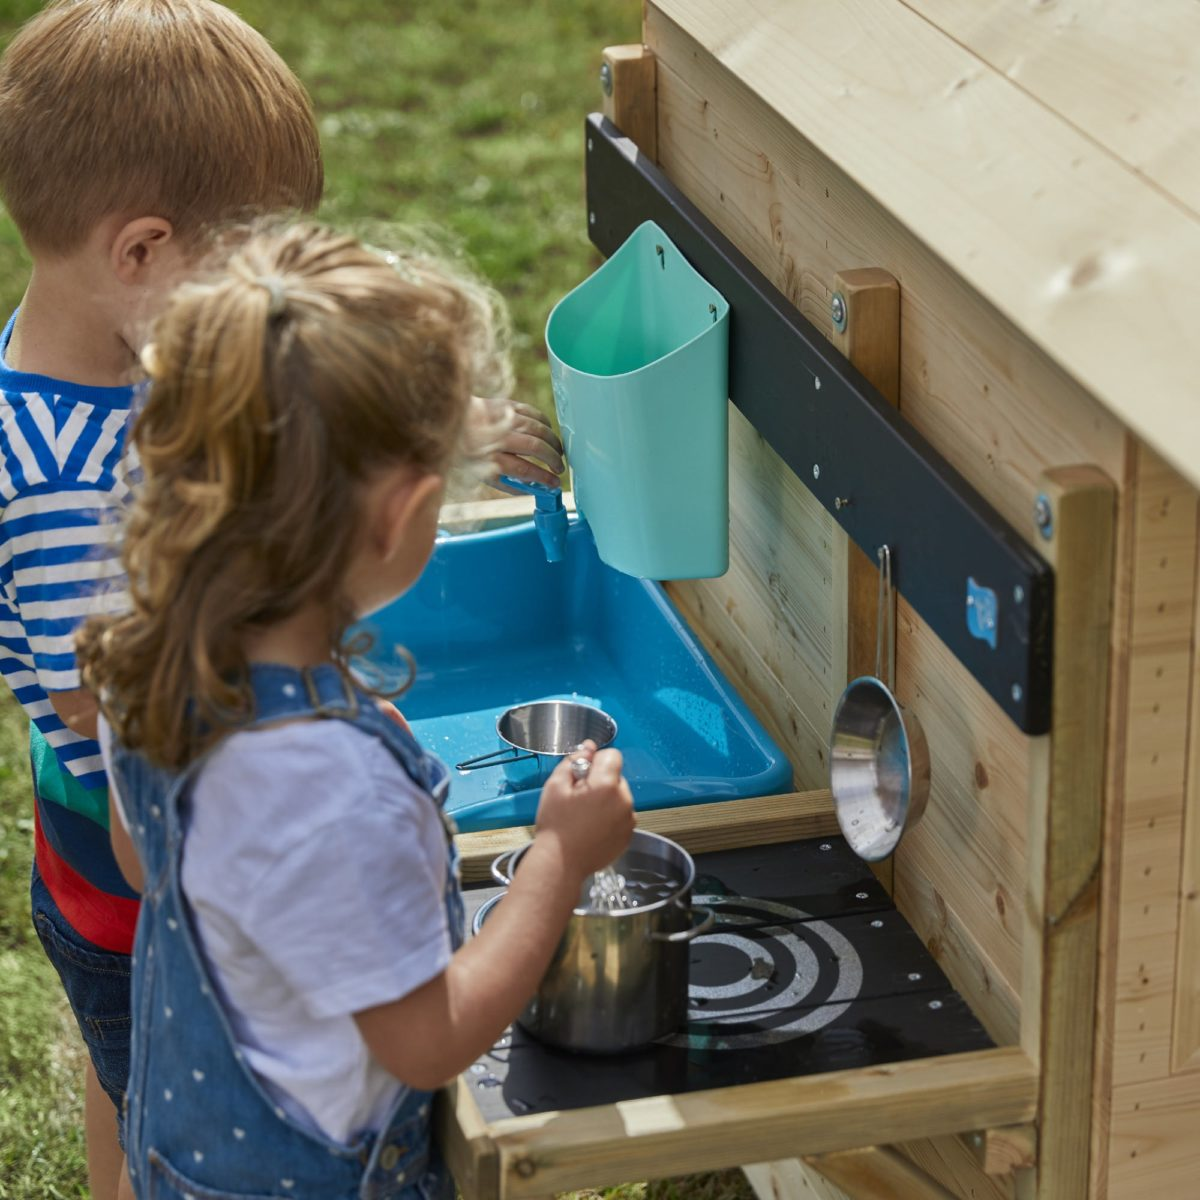 Tp Deluxe Mud Kitchen Playhouse Accessory-fsc?